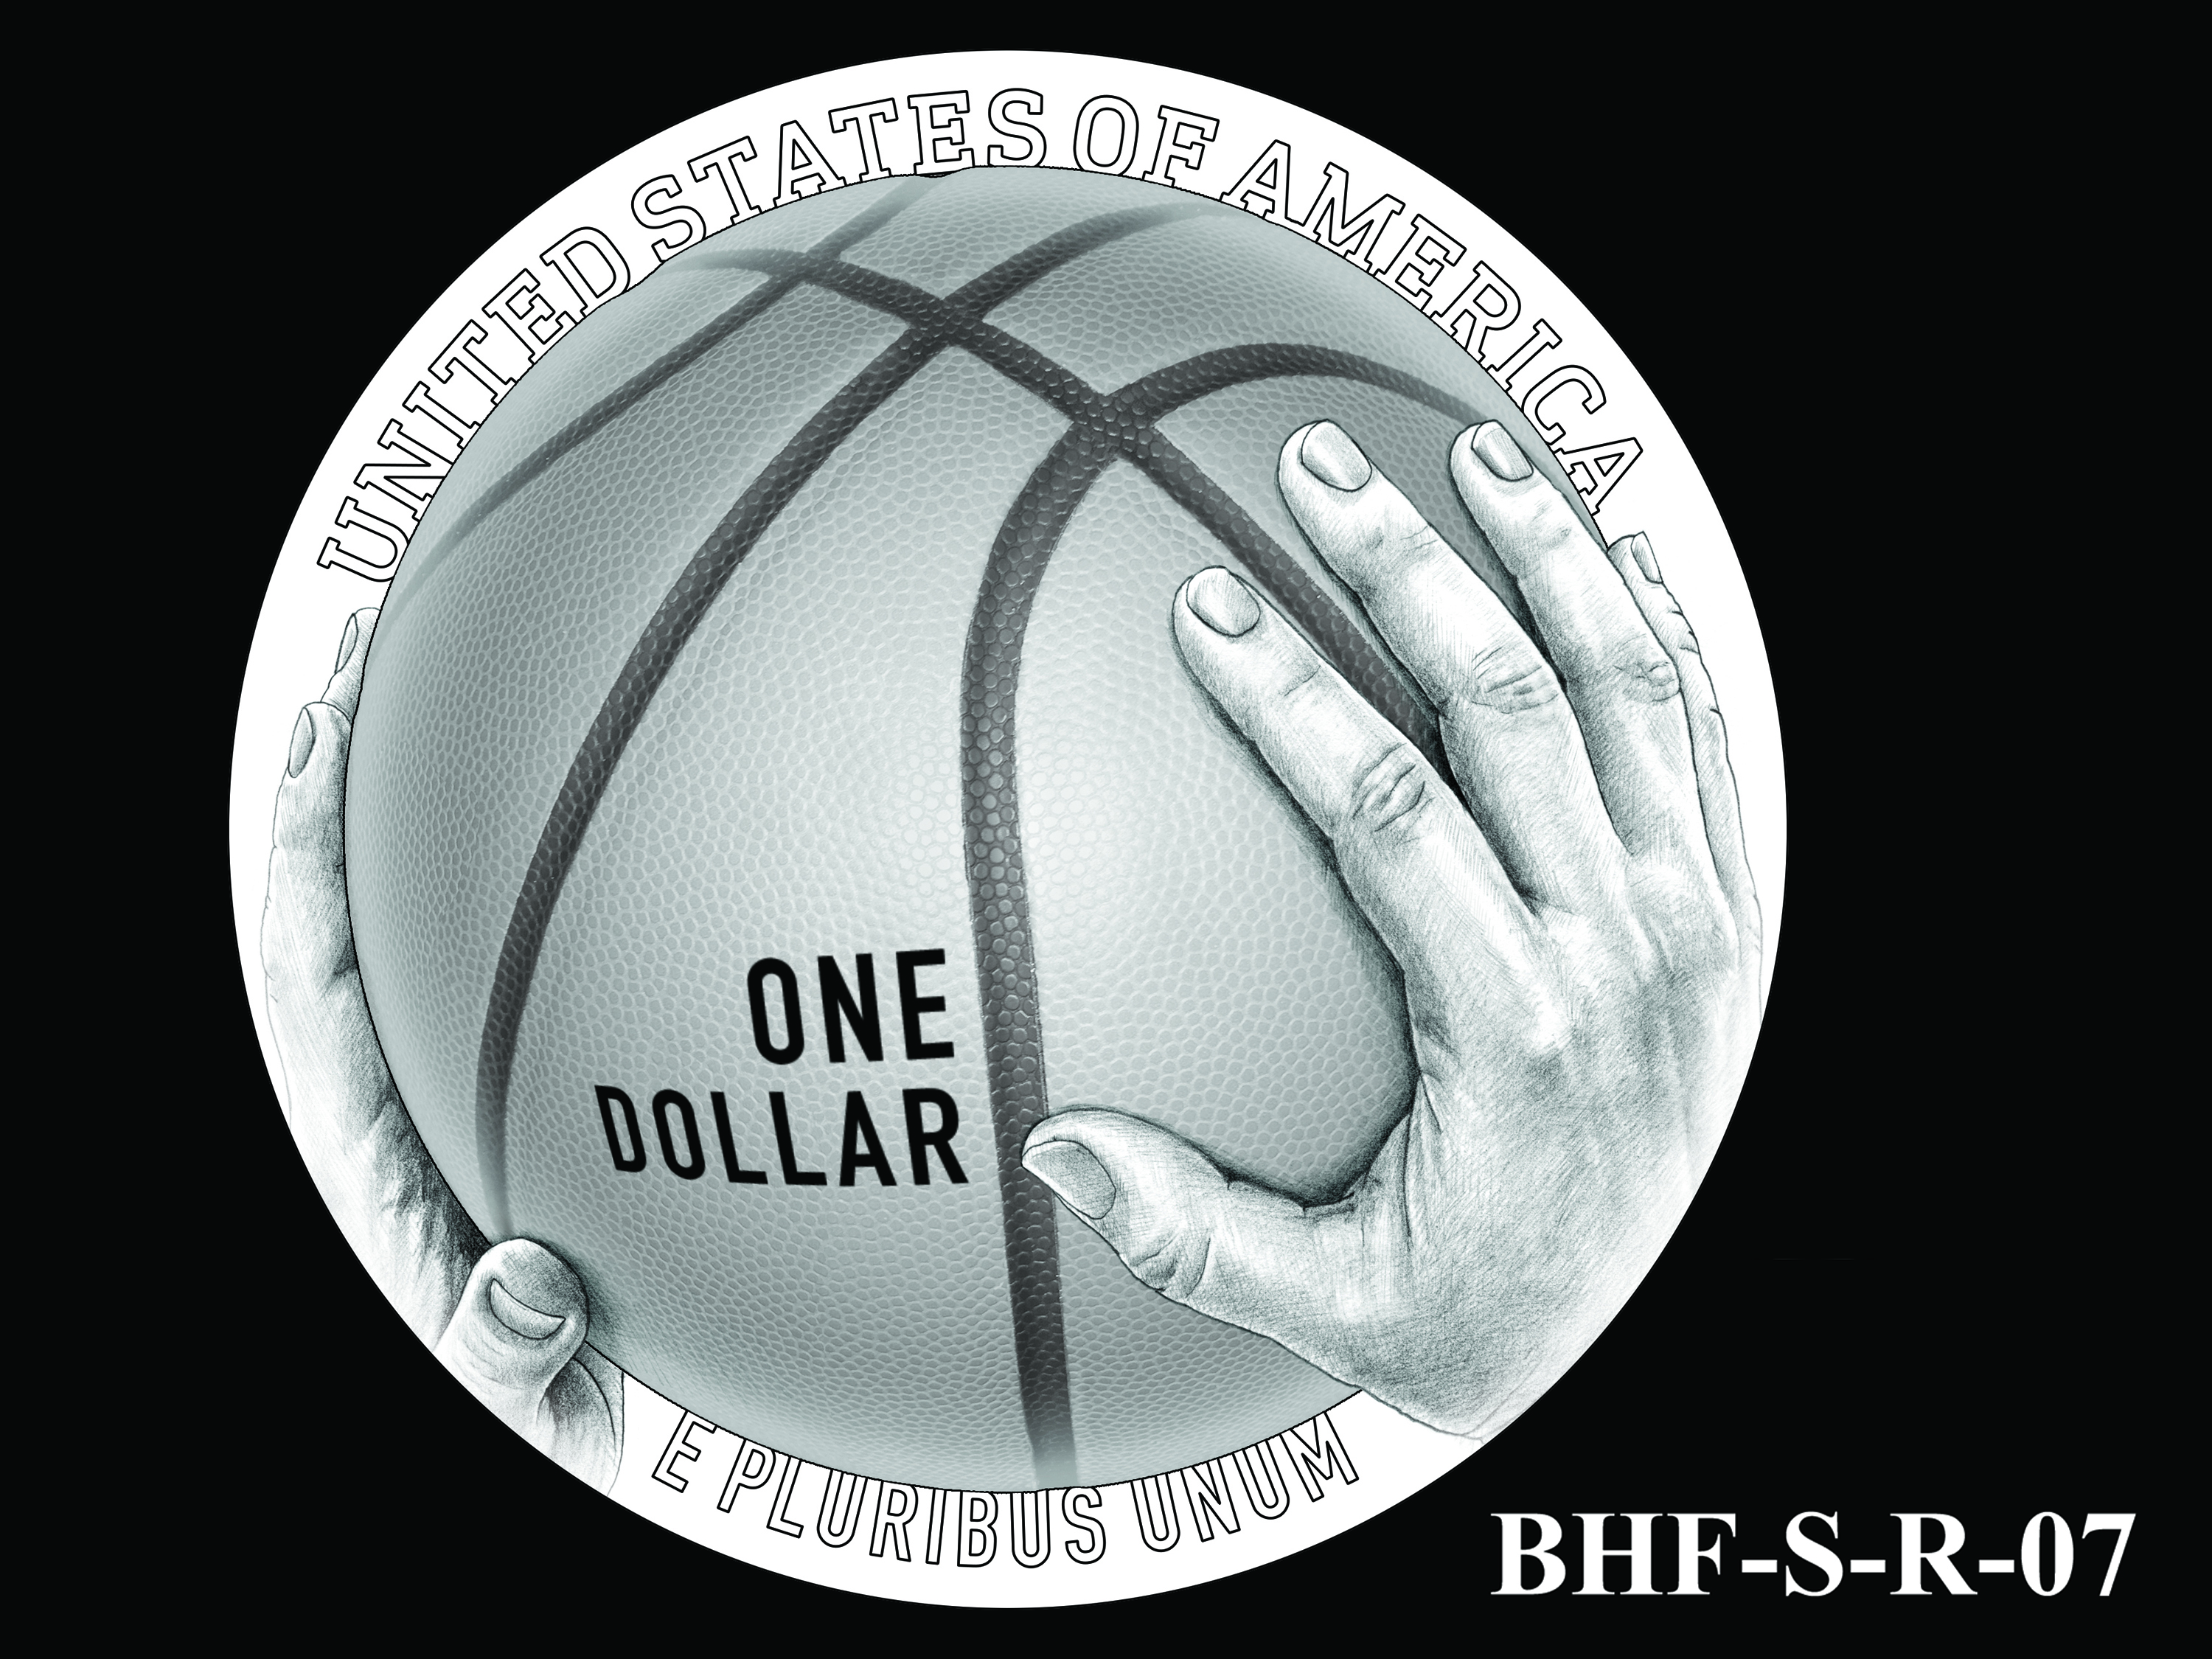 BHF-S-R-07 -- 2020 Basketball Hall of Fame Commemorative Coin Program - Silver Reverse